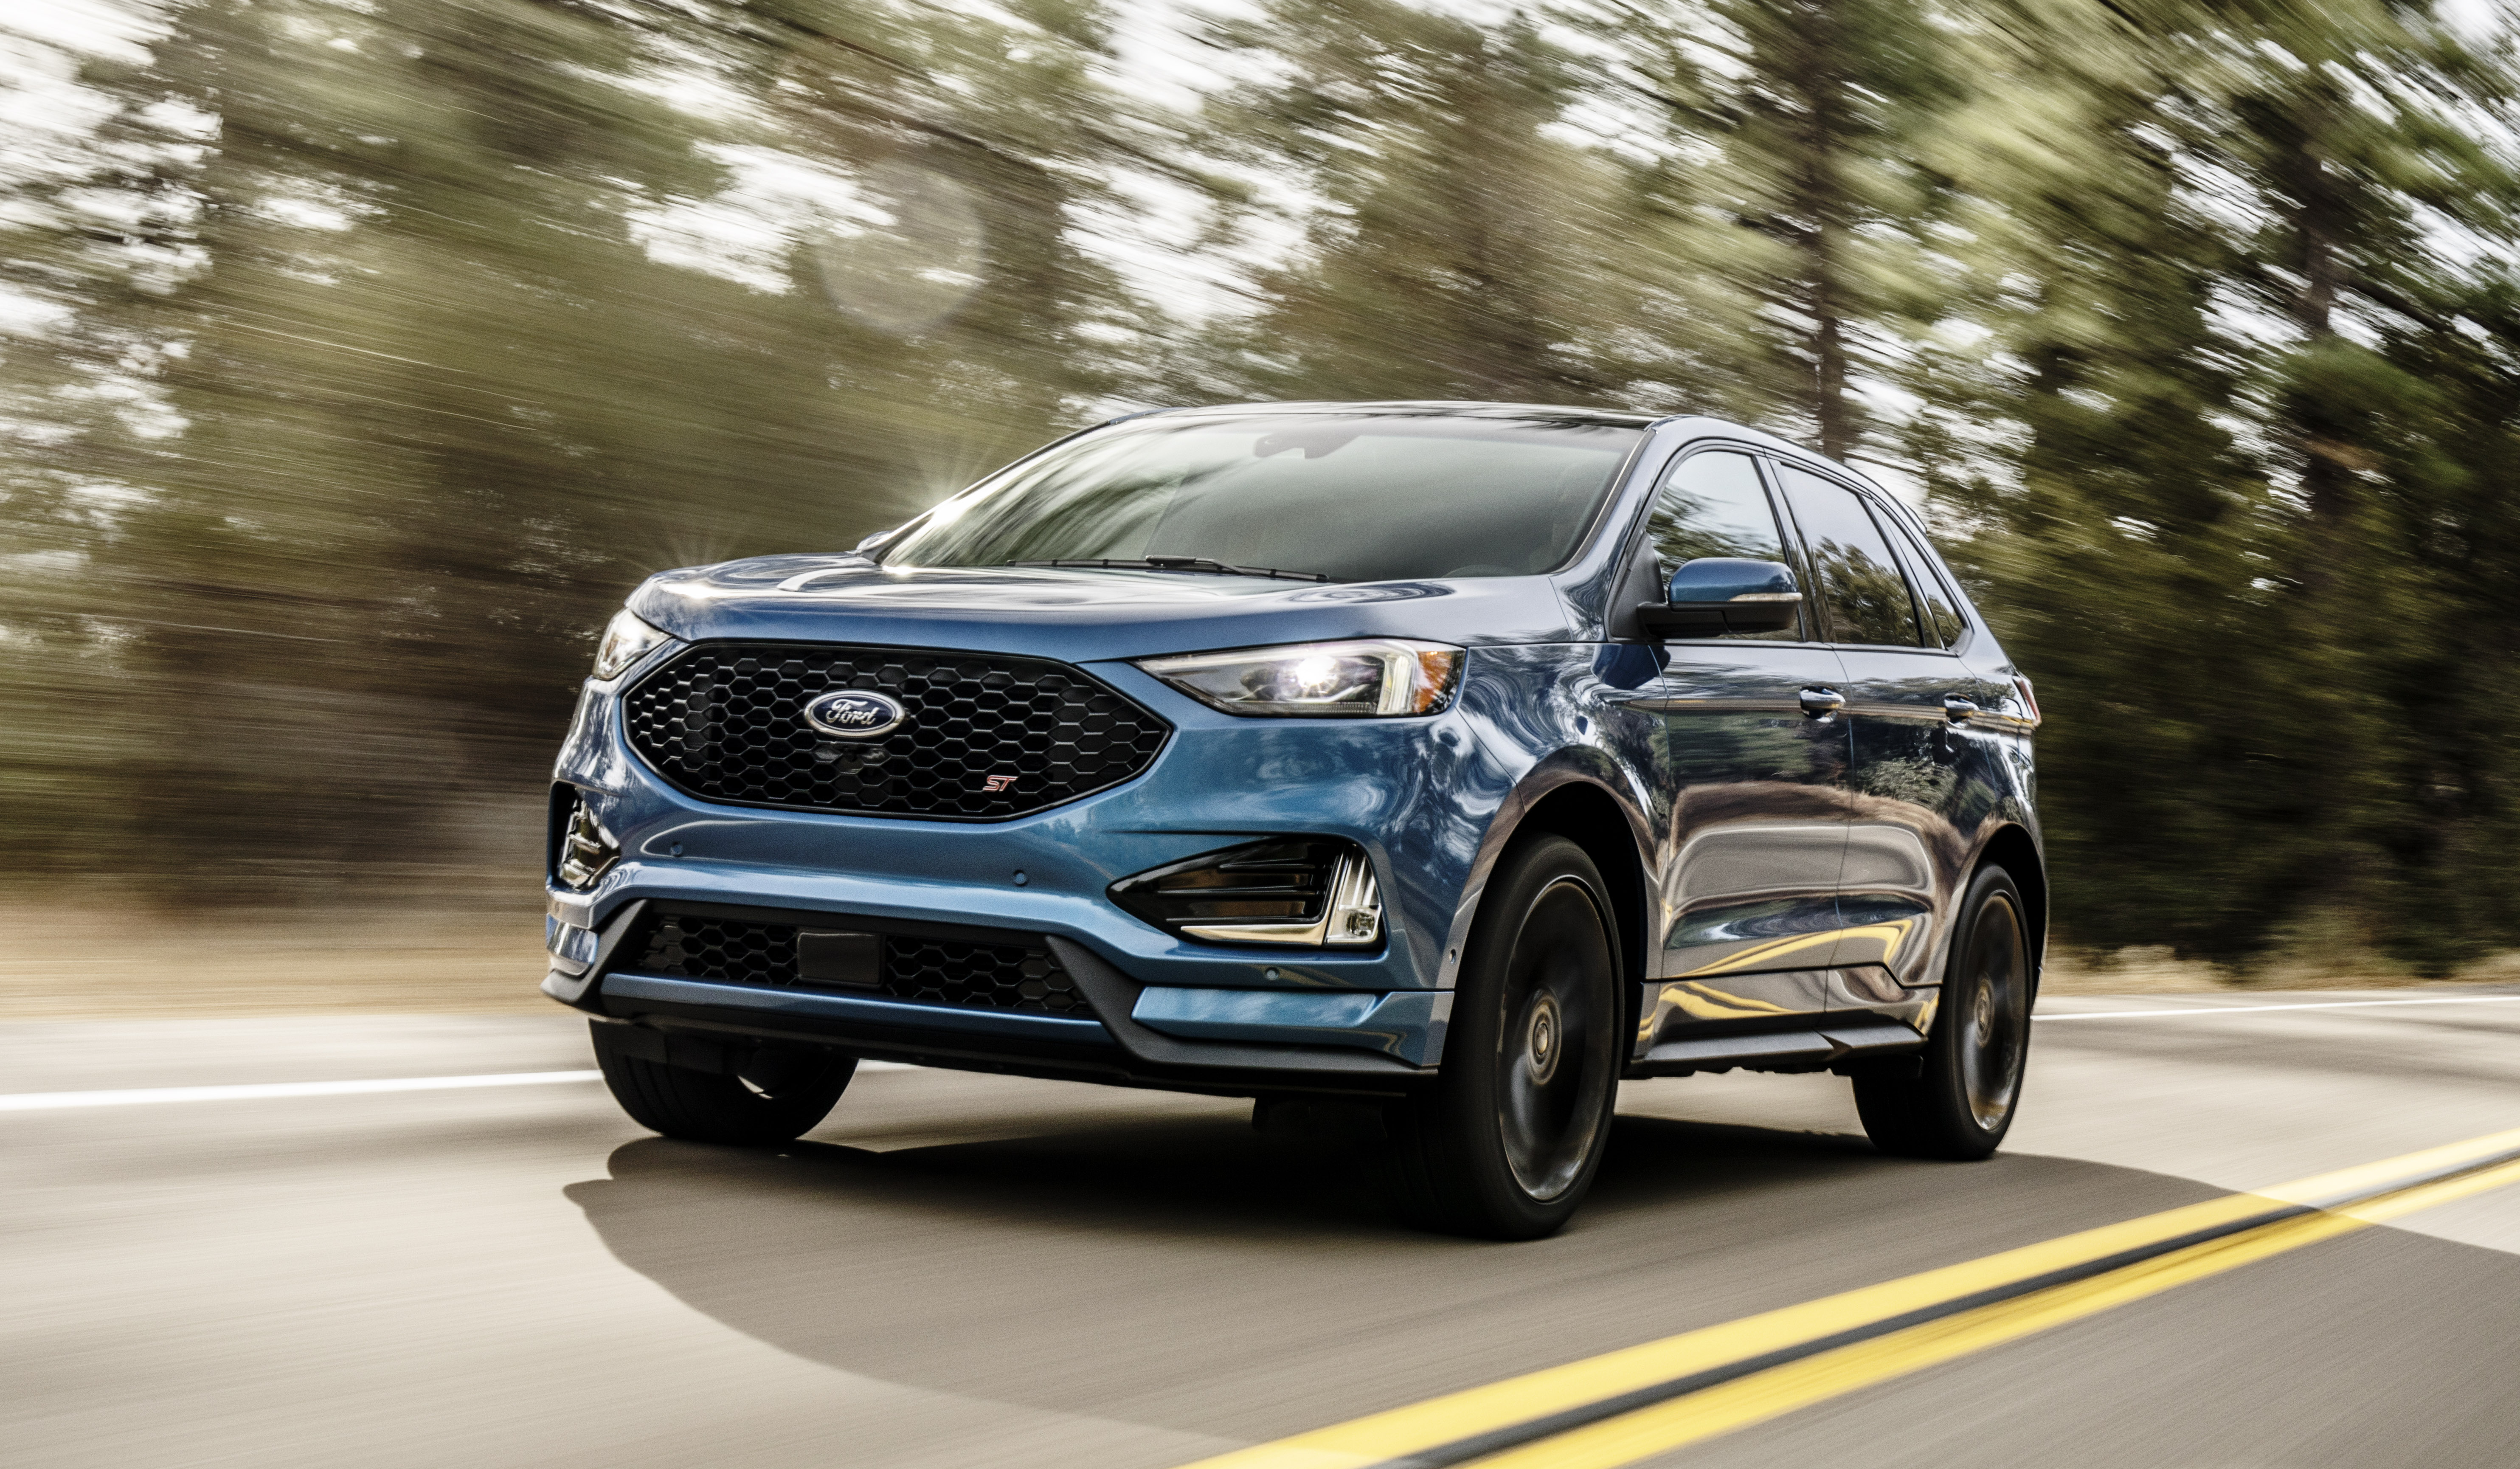 Does The Ford Edge Have Android Auto